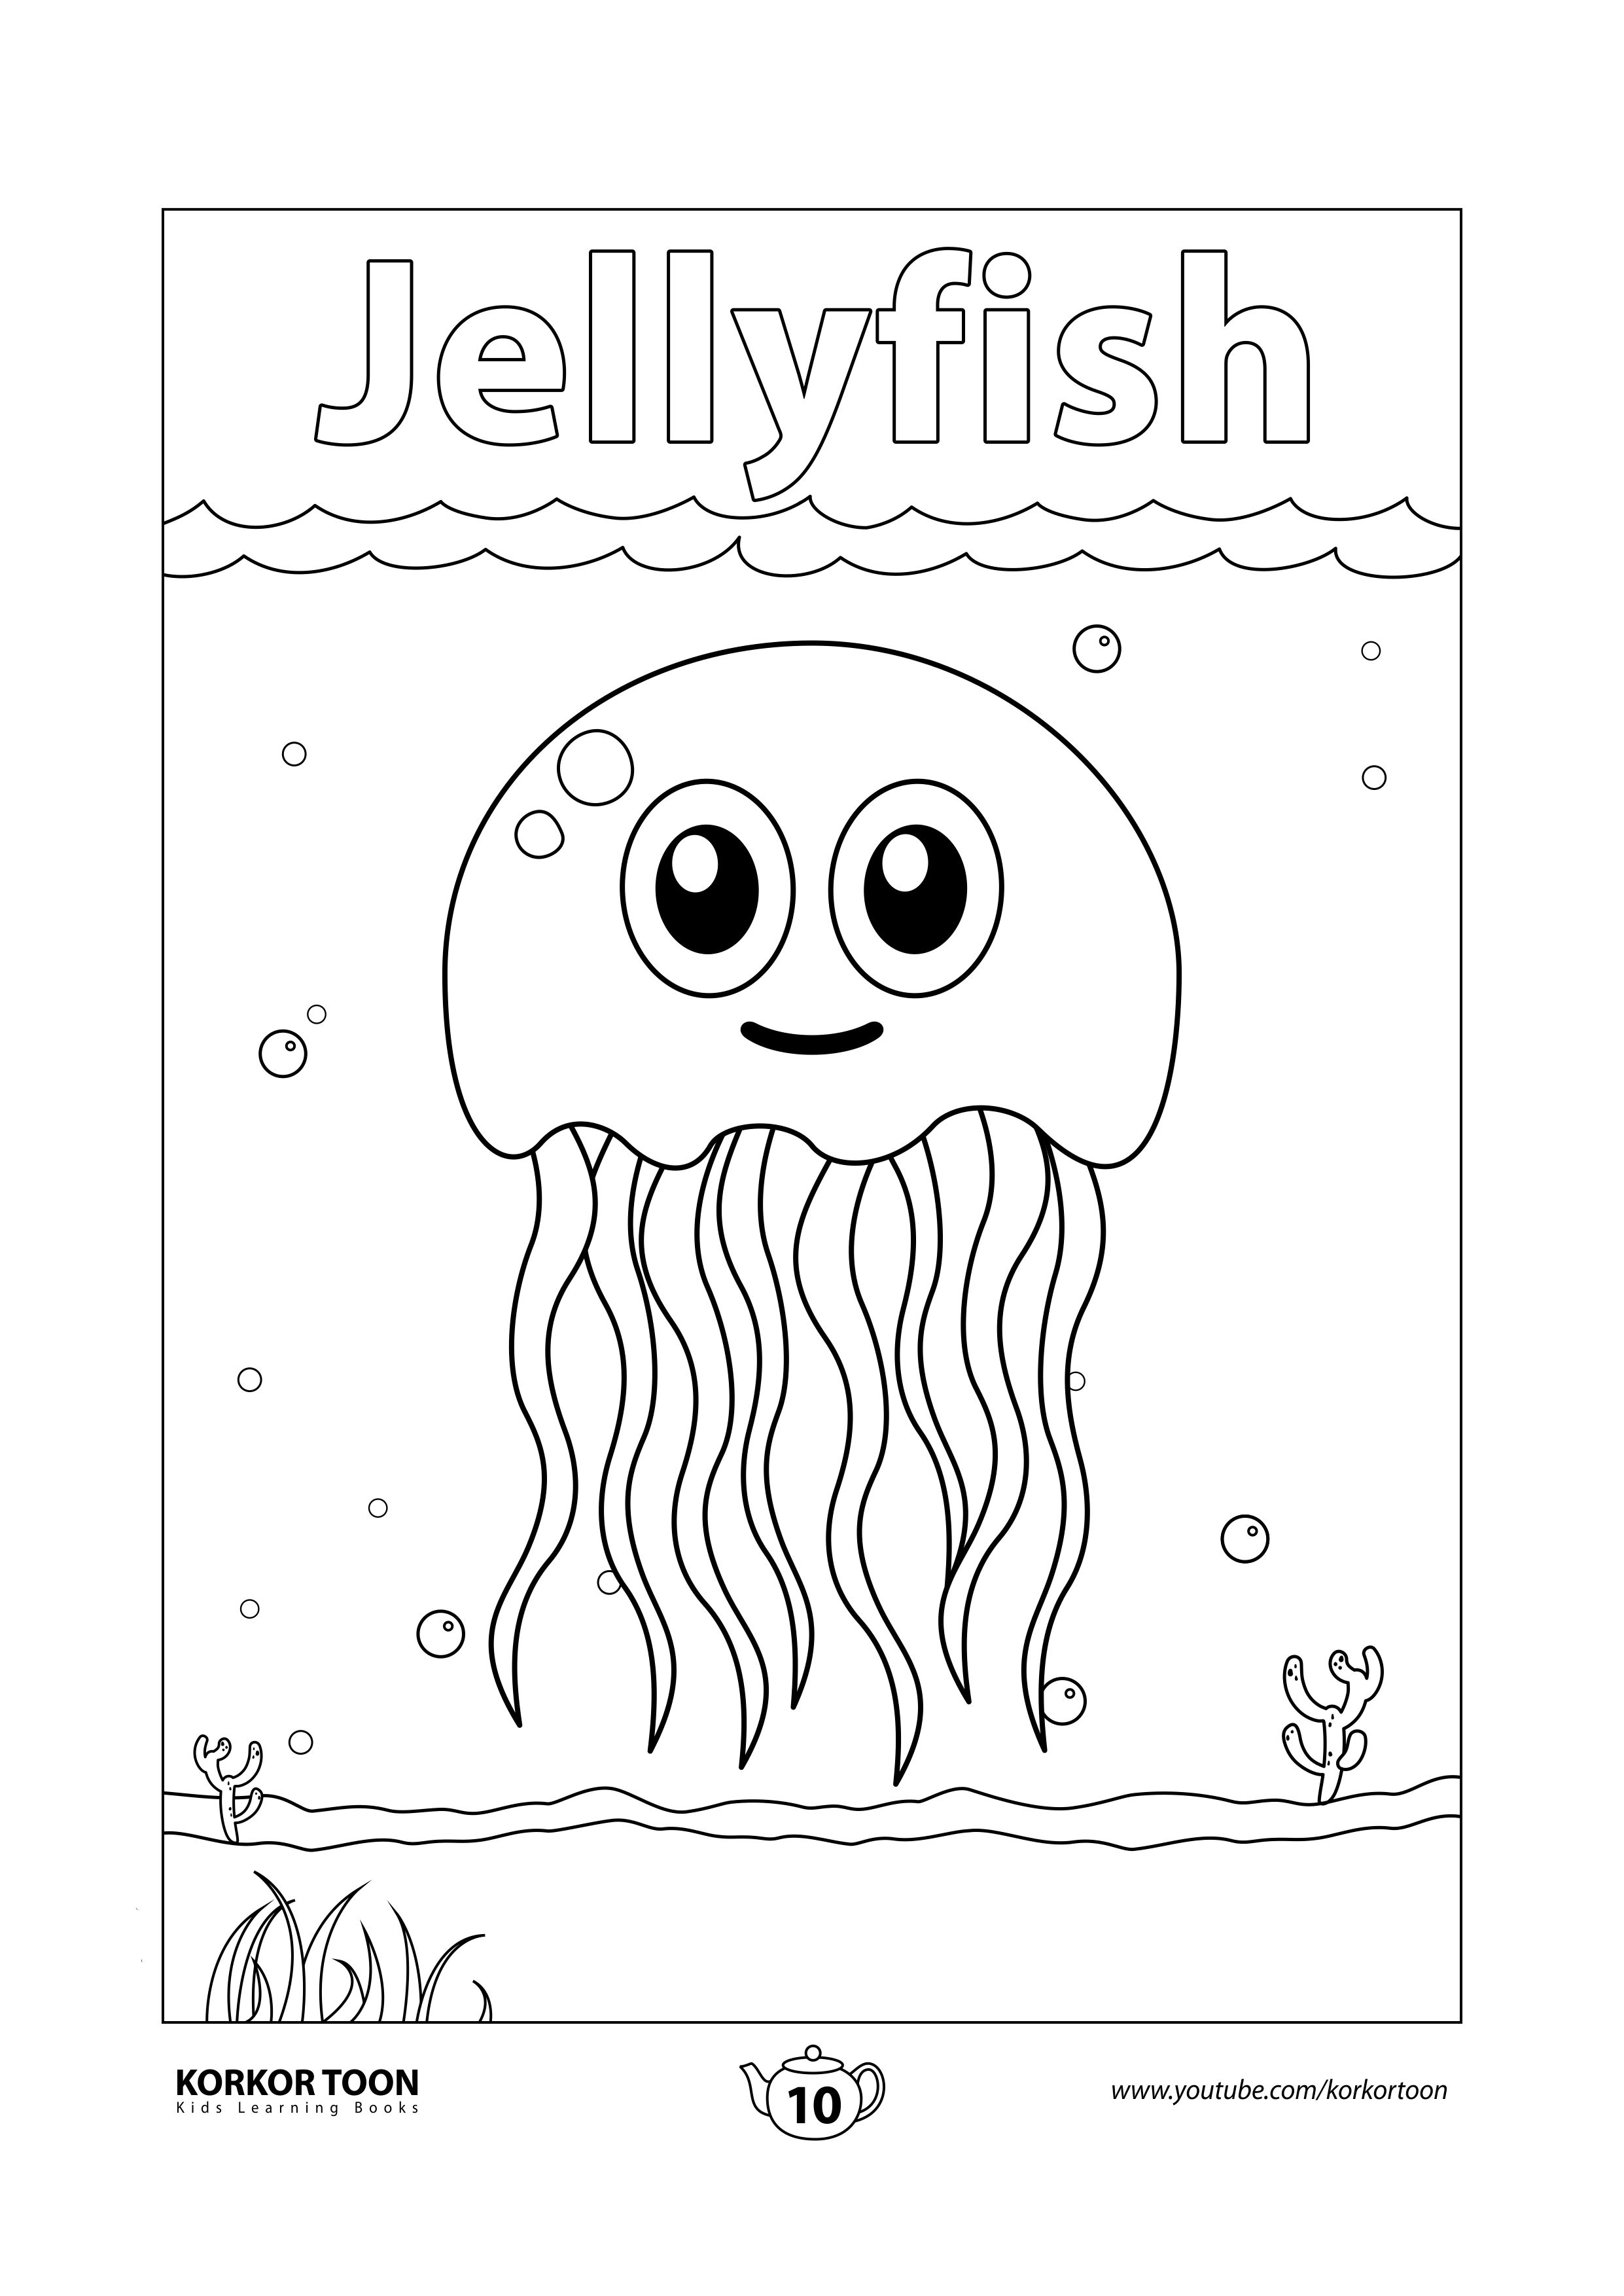 Jellyfish Coloring Page Sea Animals Coloring Book For Kids Coloring Books Animal Coloring Books Kids Coloring Books